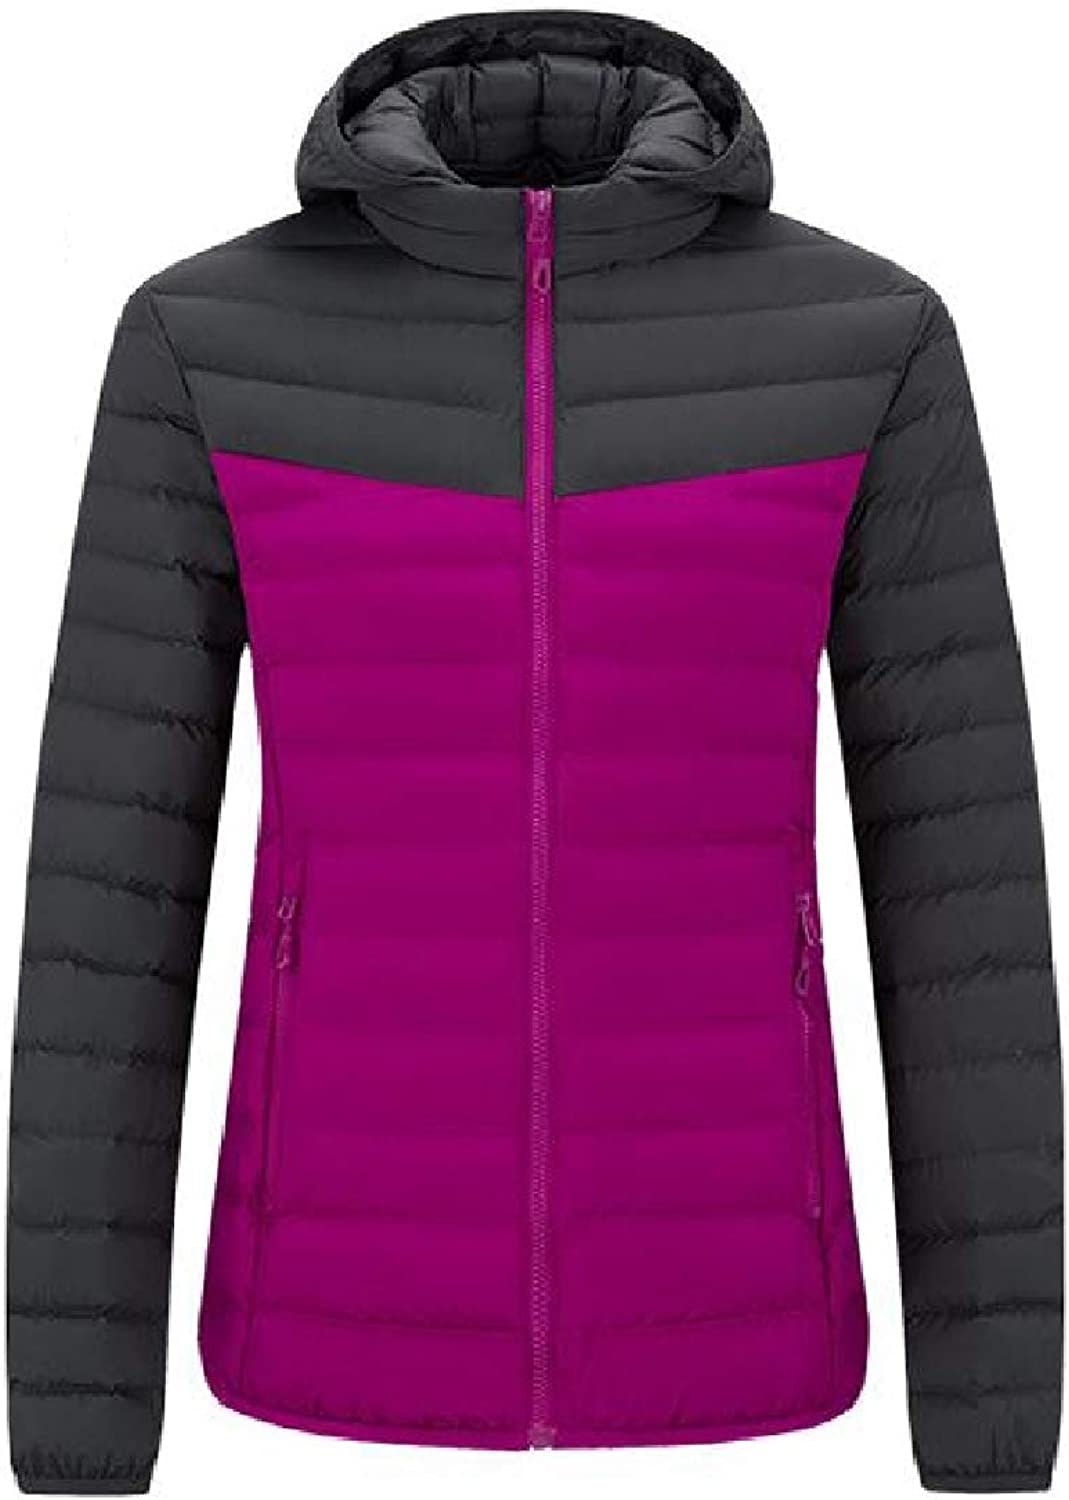 Mfasica Womens Thick Hooded Athletic Keep Warm Outwear color Conjoin Parka Jacket